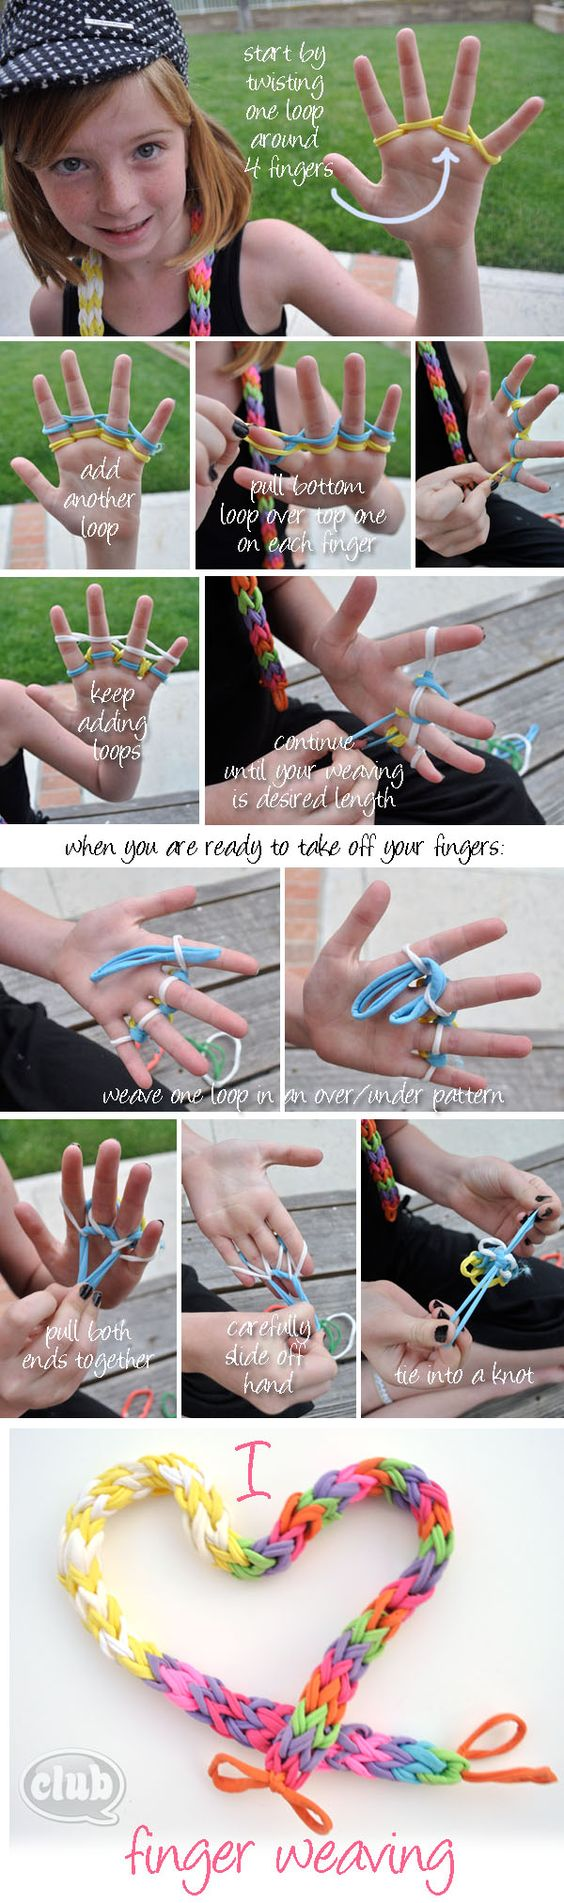 finger weaving tutorial @clubchicacircle